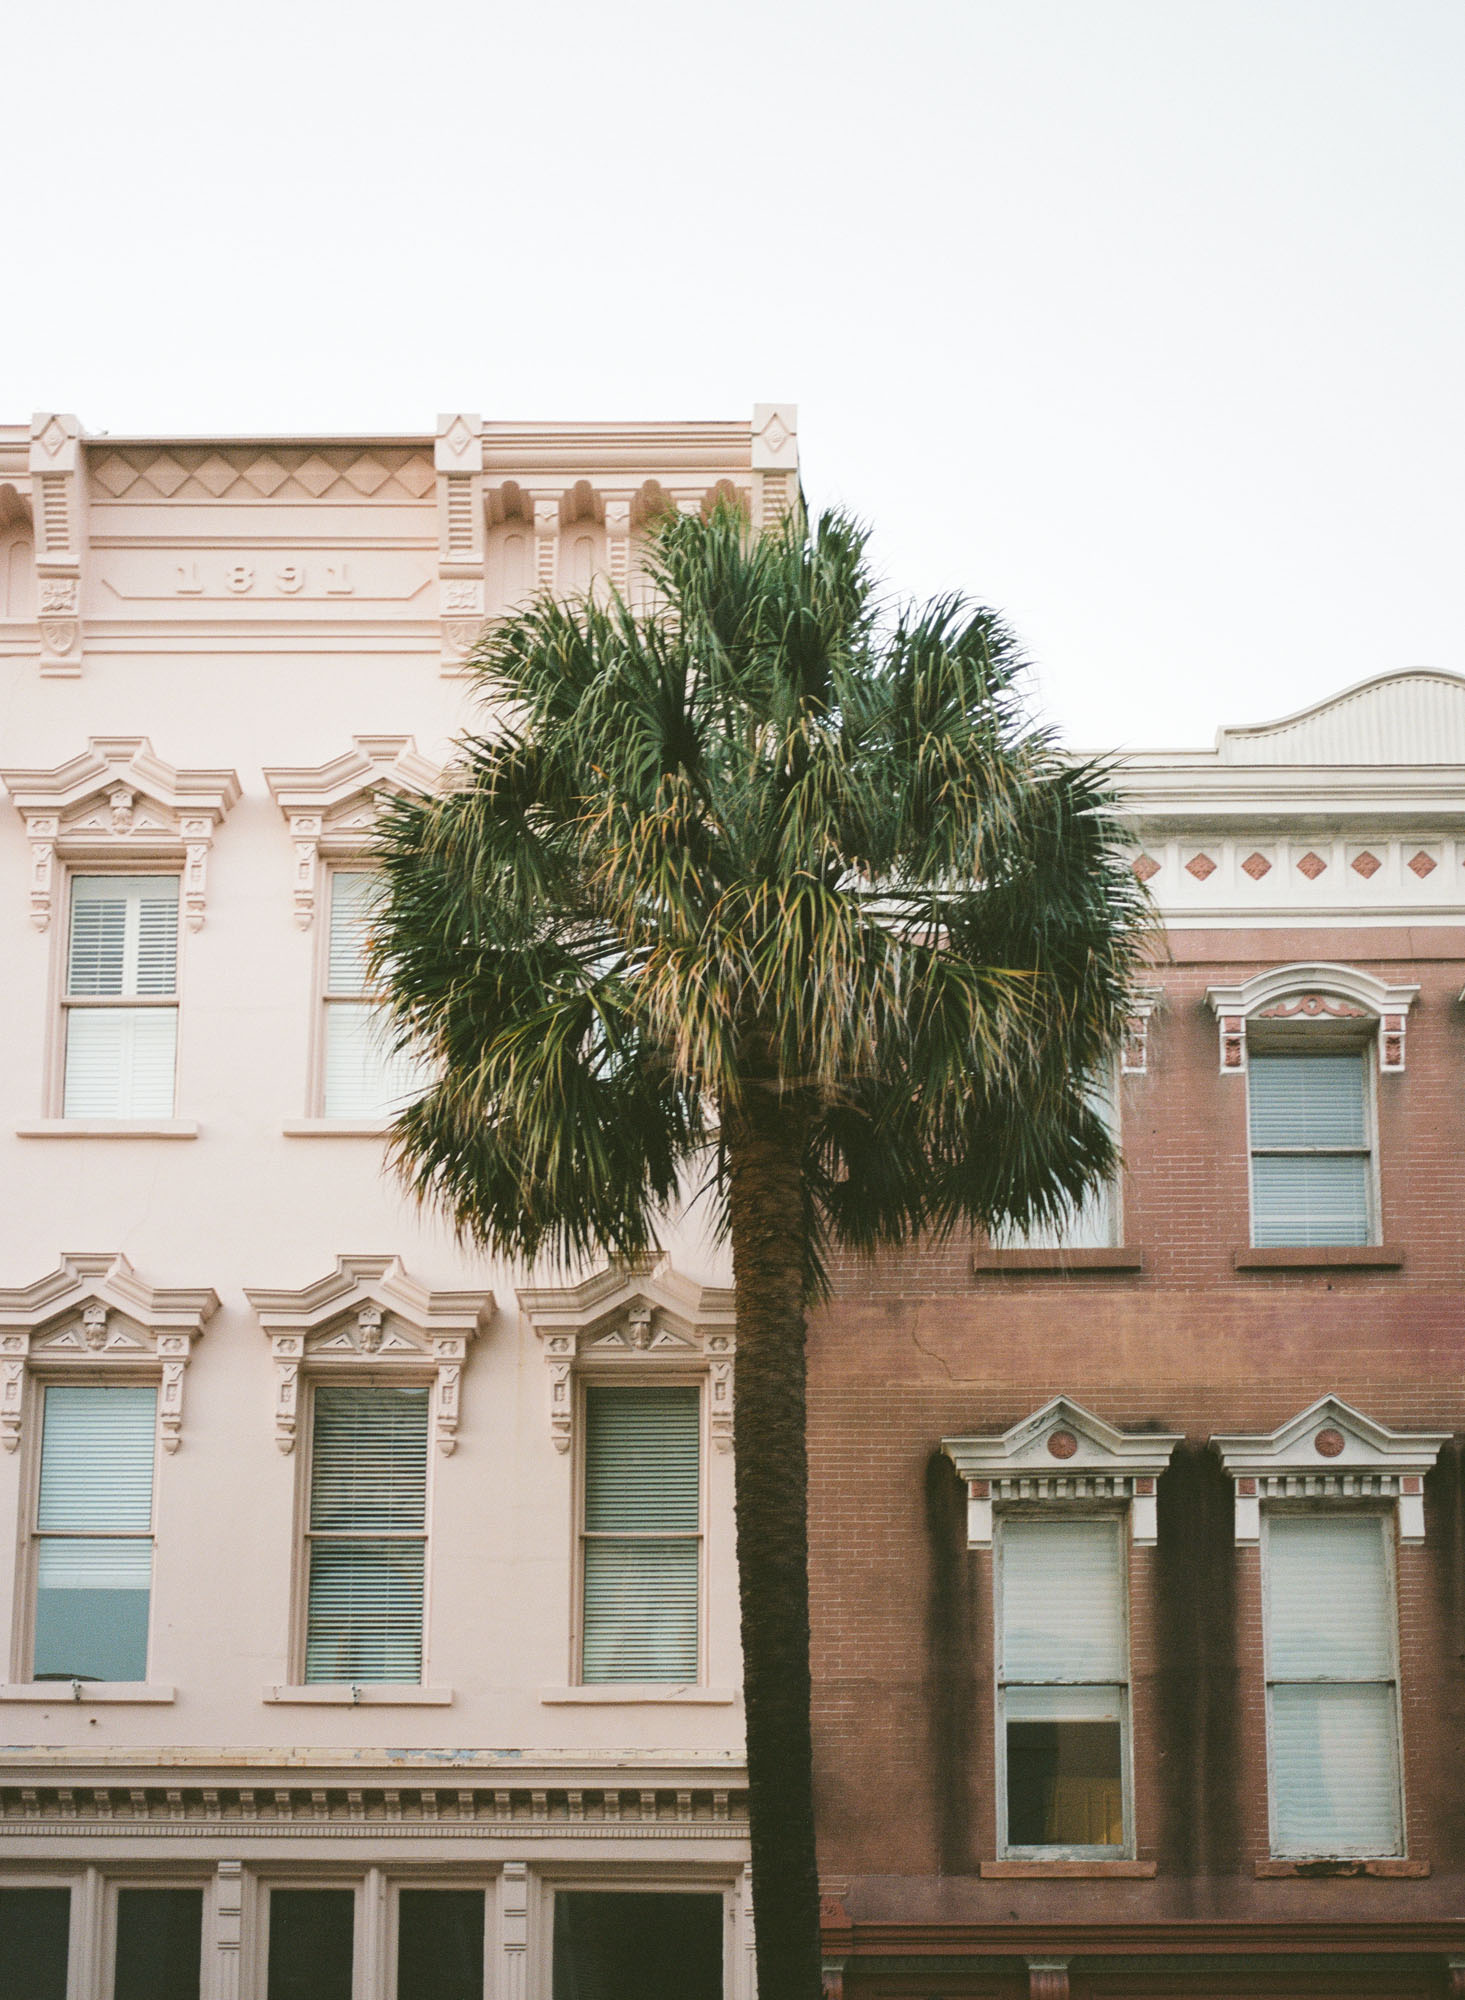 charleston-film-photography-35mm-film-analog-charleston-photographer-001